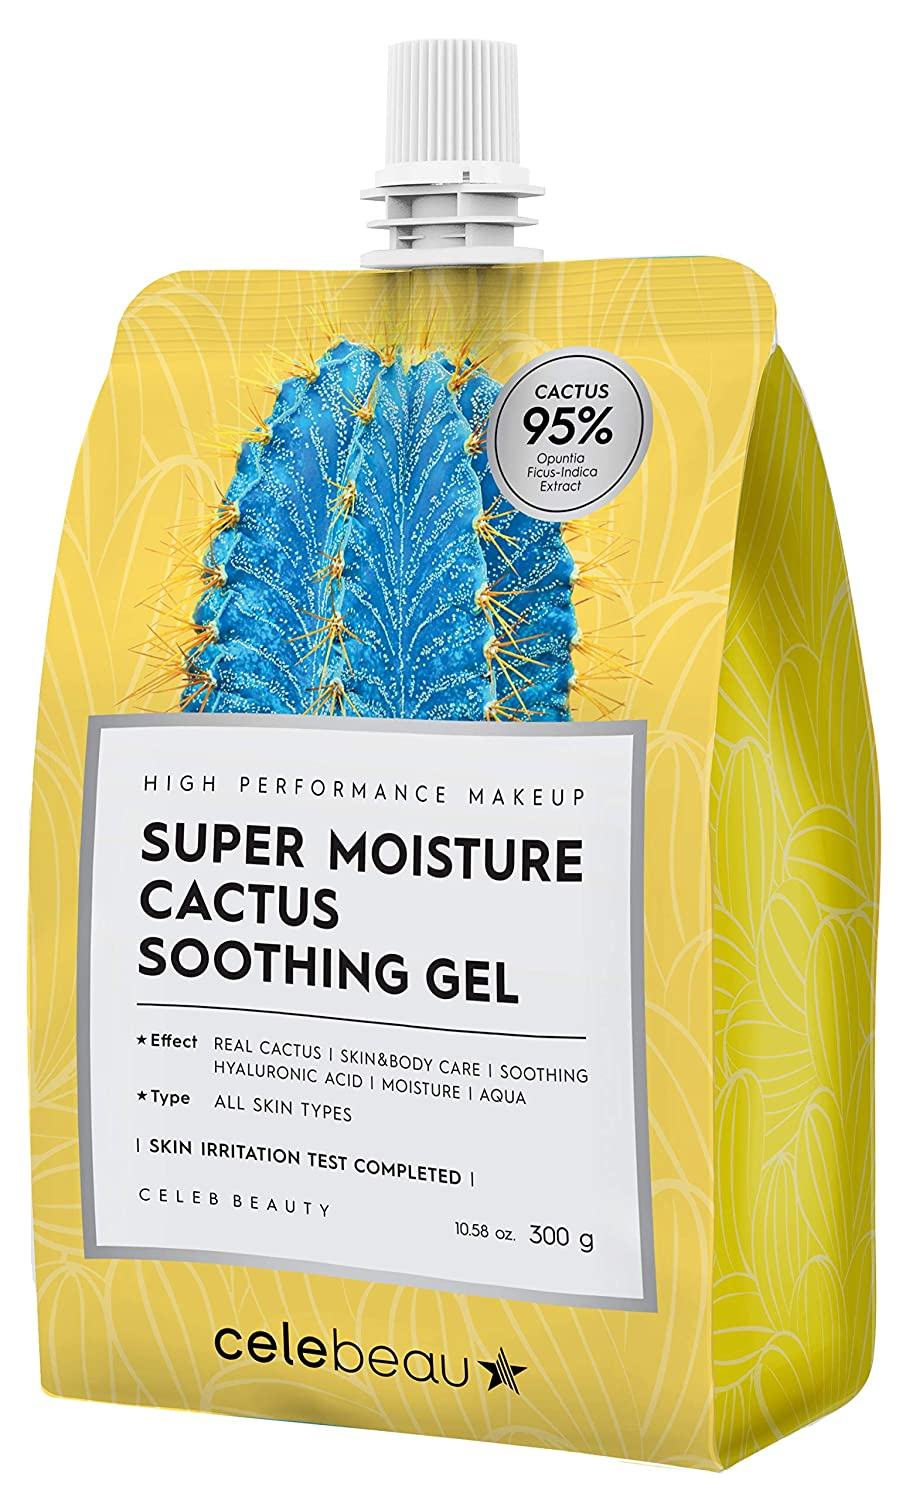 CELEBEAU - Super Moisture Cactus Soothing Gel - 95% Cactus Extract - Maximum Soothing & Hydration for All Sensitive Skin Types - Excellent After Sun Care Relief - 300g